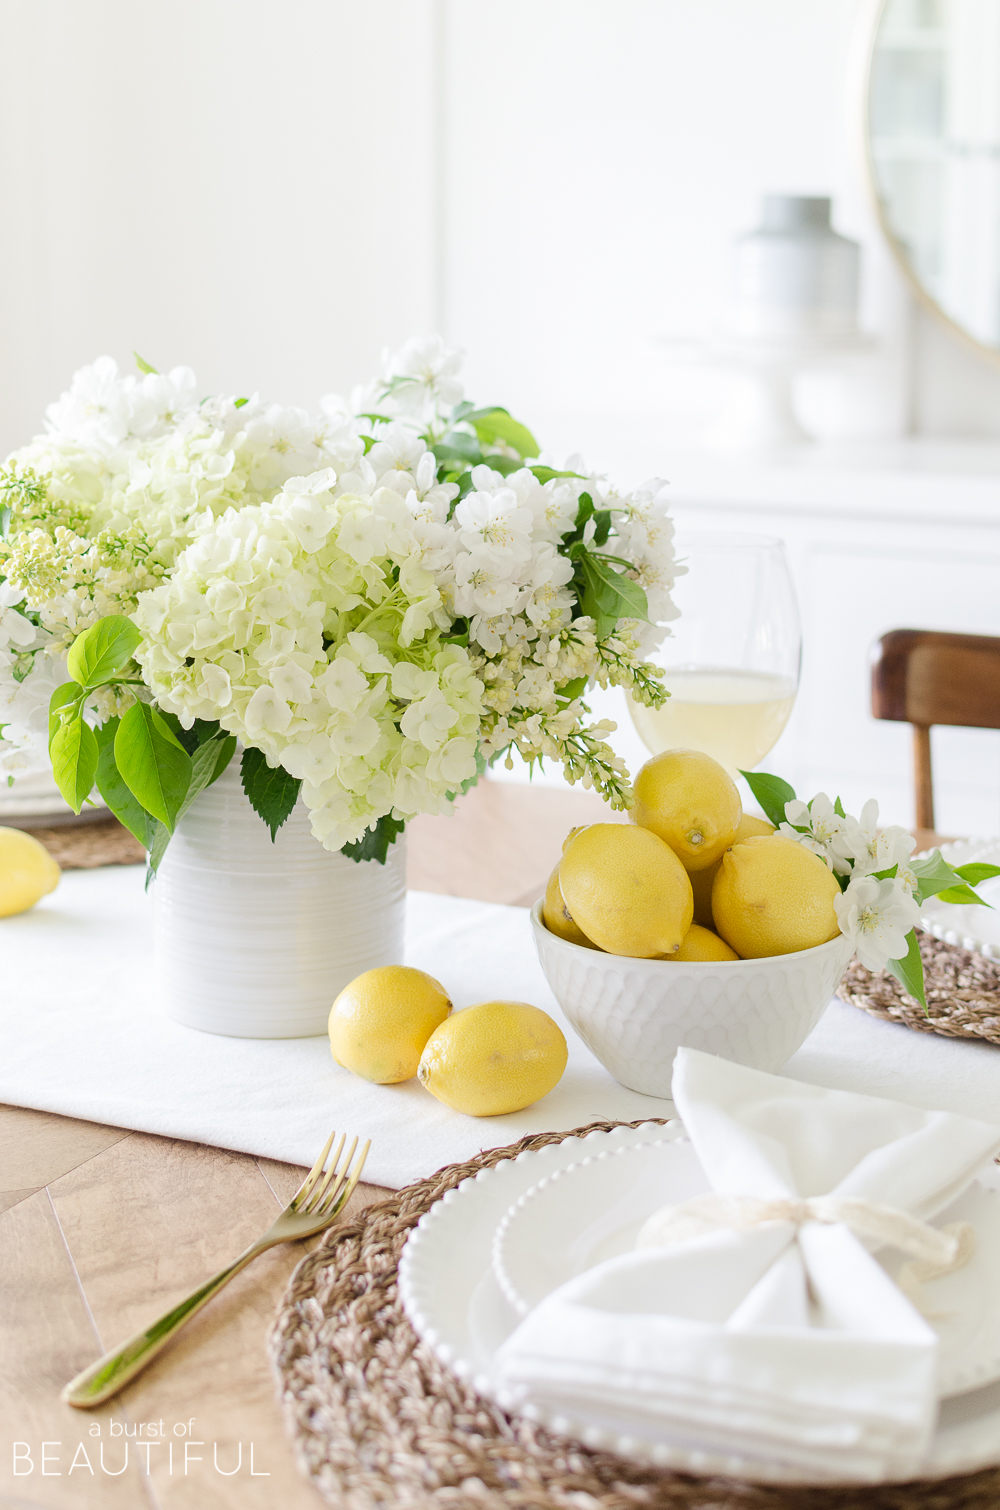 Summer entertaining is easy when you set this cheerful white and yellow summer tablescape using fresh flowers and fruit.